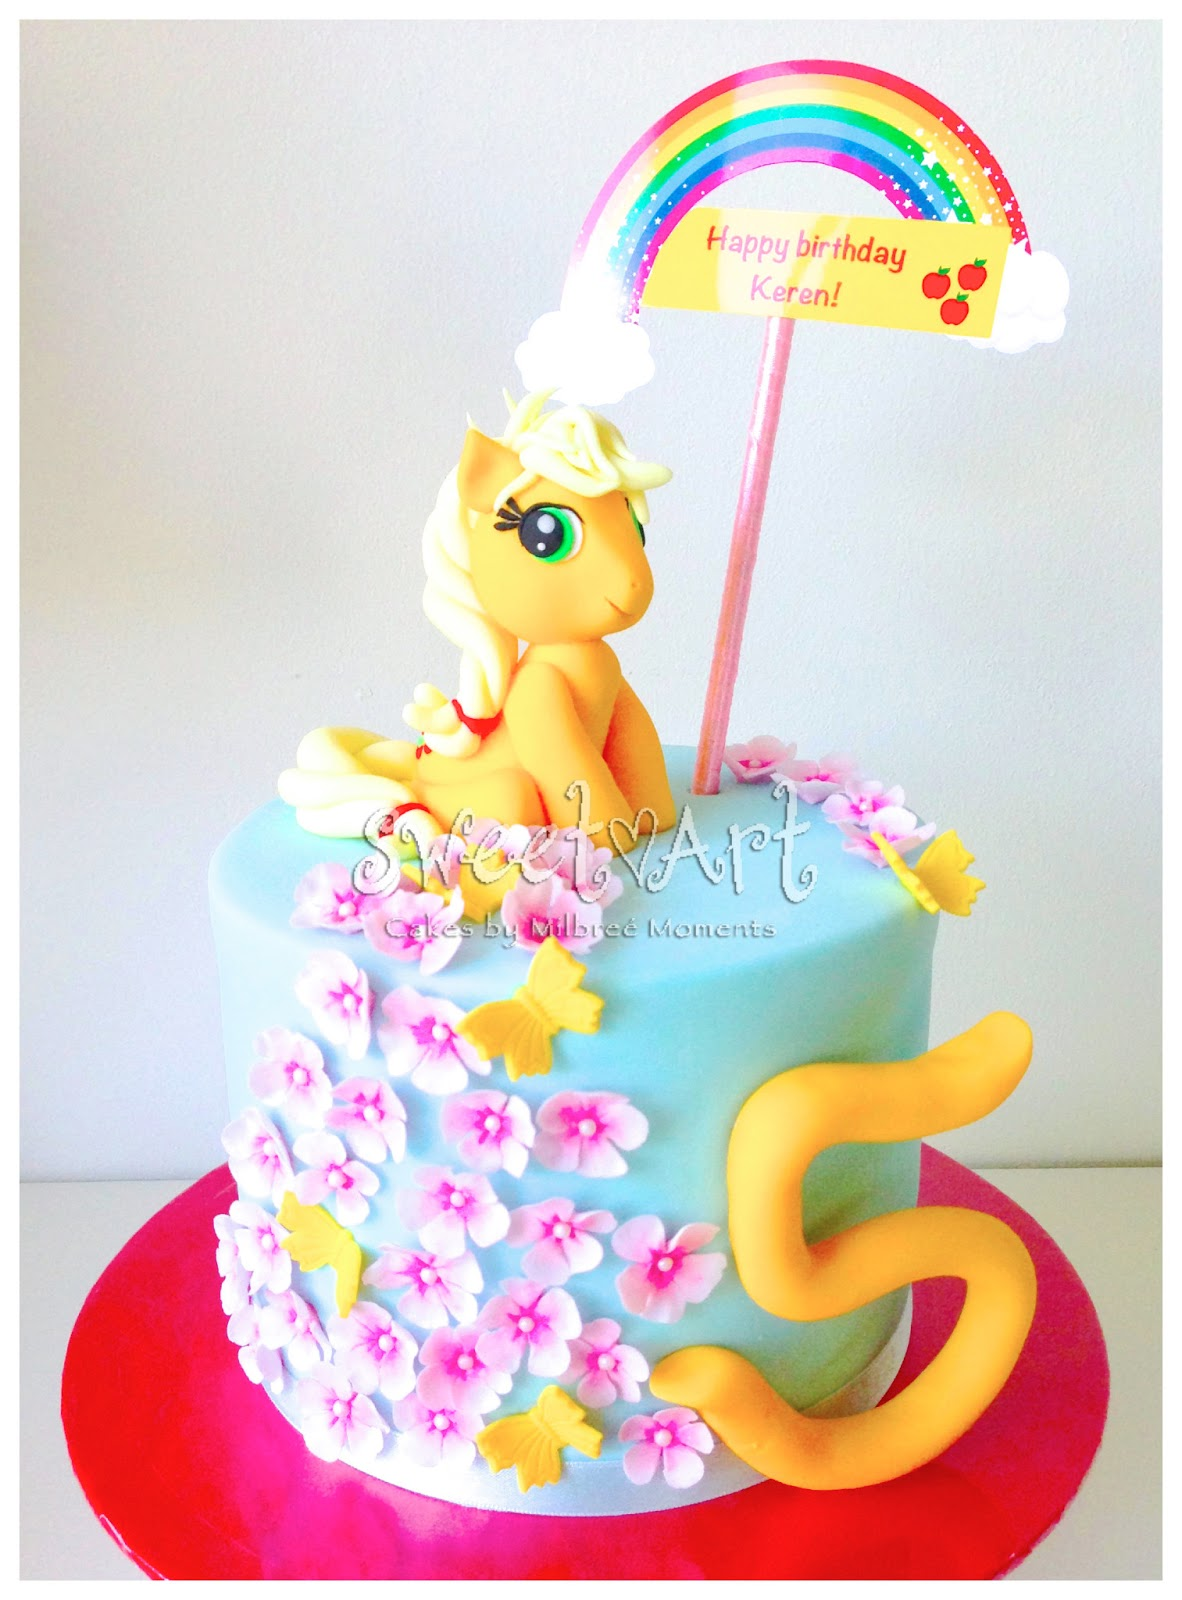 Sweet Art Cakes By Milbree Moments Keren S My Little Pony